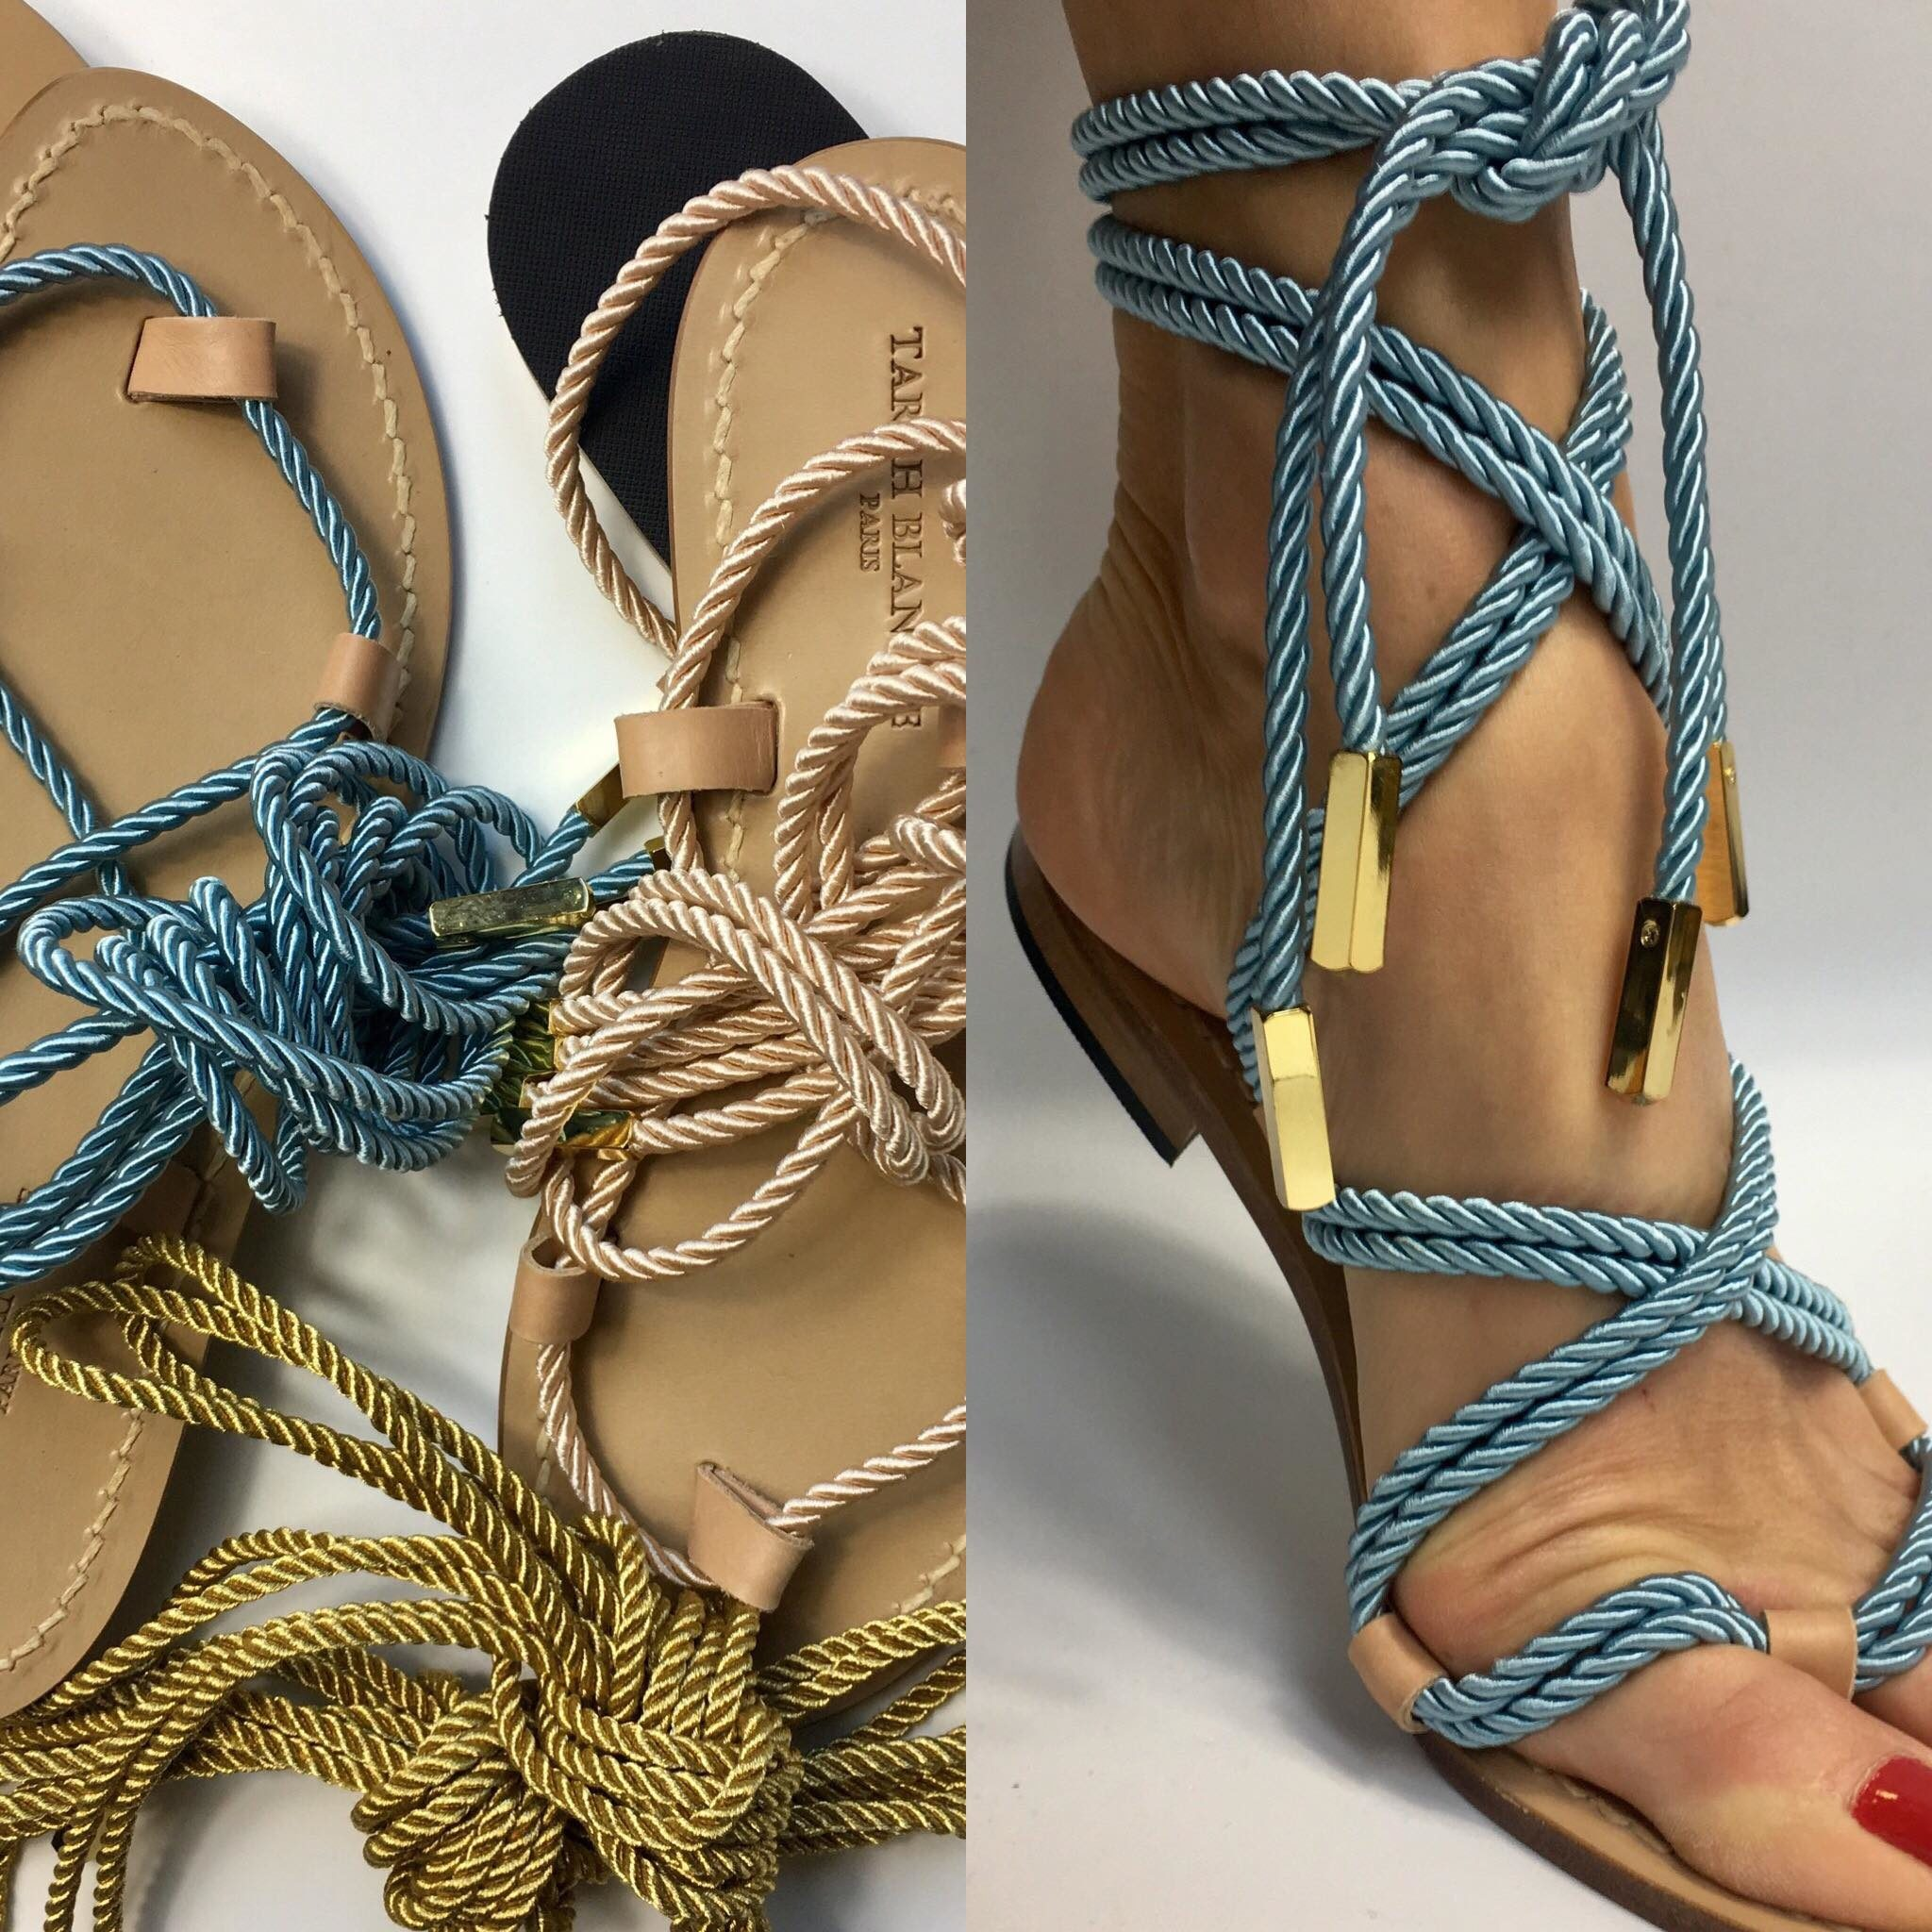 Beige Sandals with 2 laces